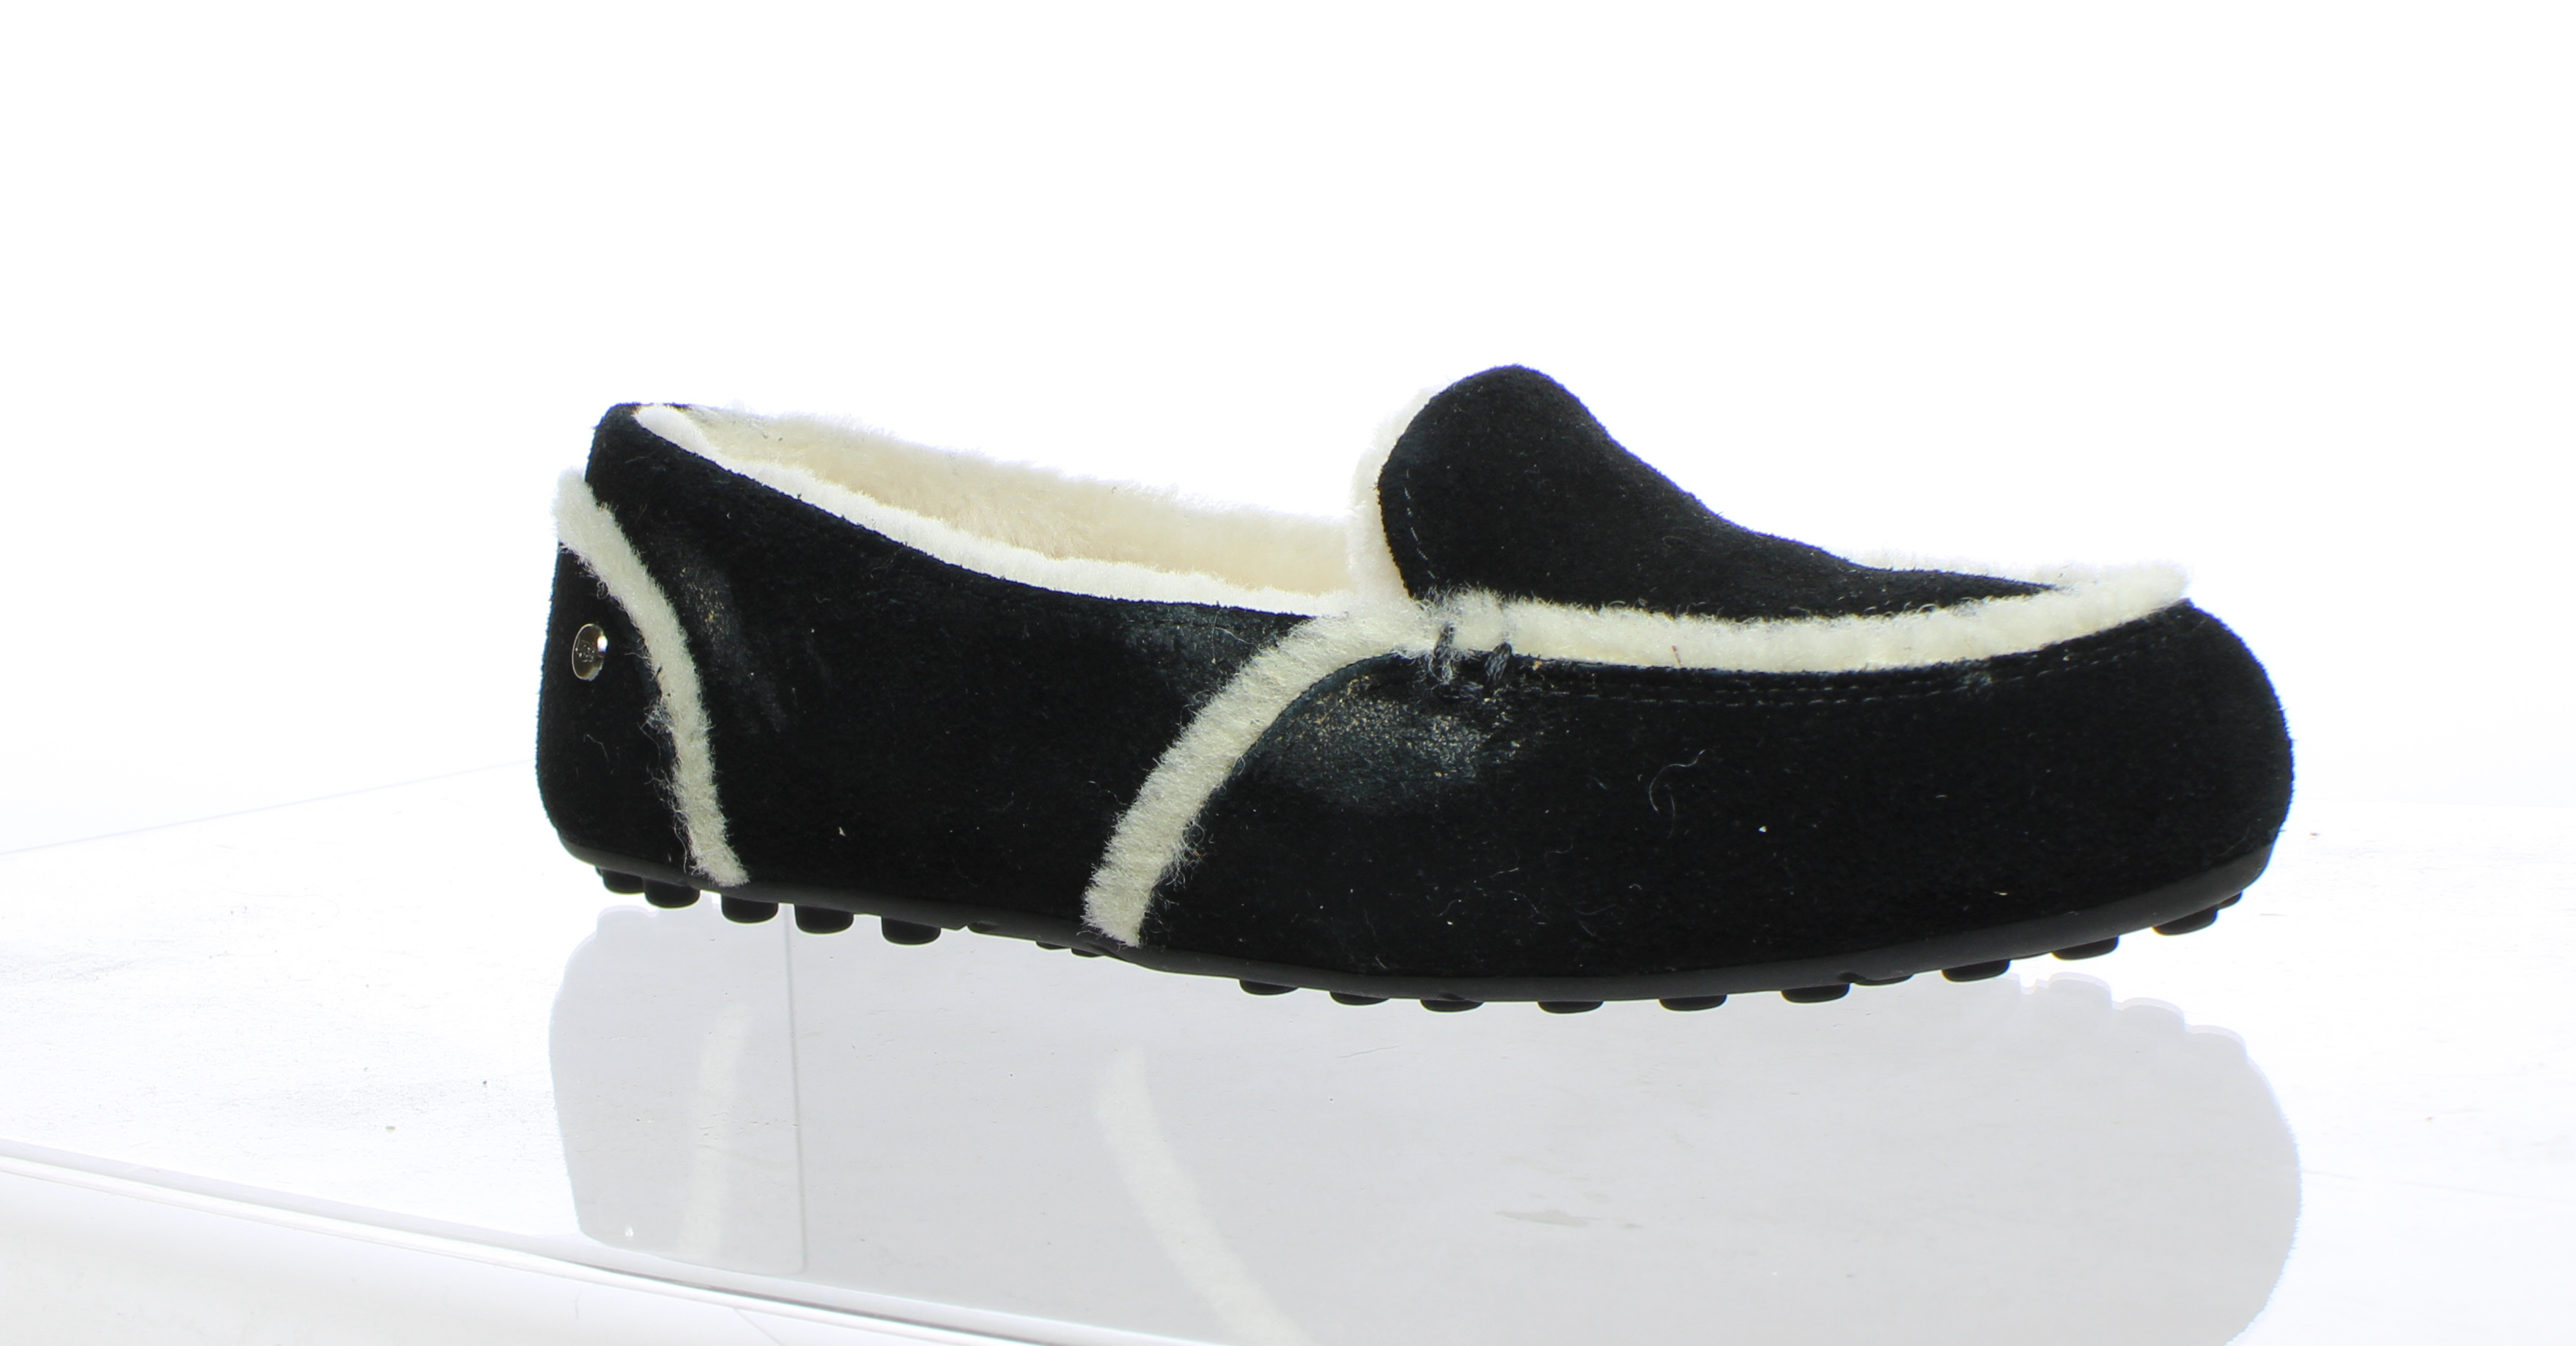 f14e8cecf5c UGG Womens Hailey Black Mule Slippers Size 8 (236094) 191142423991 ...